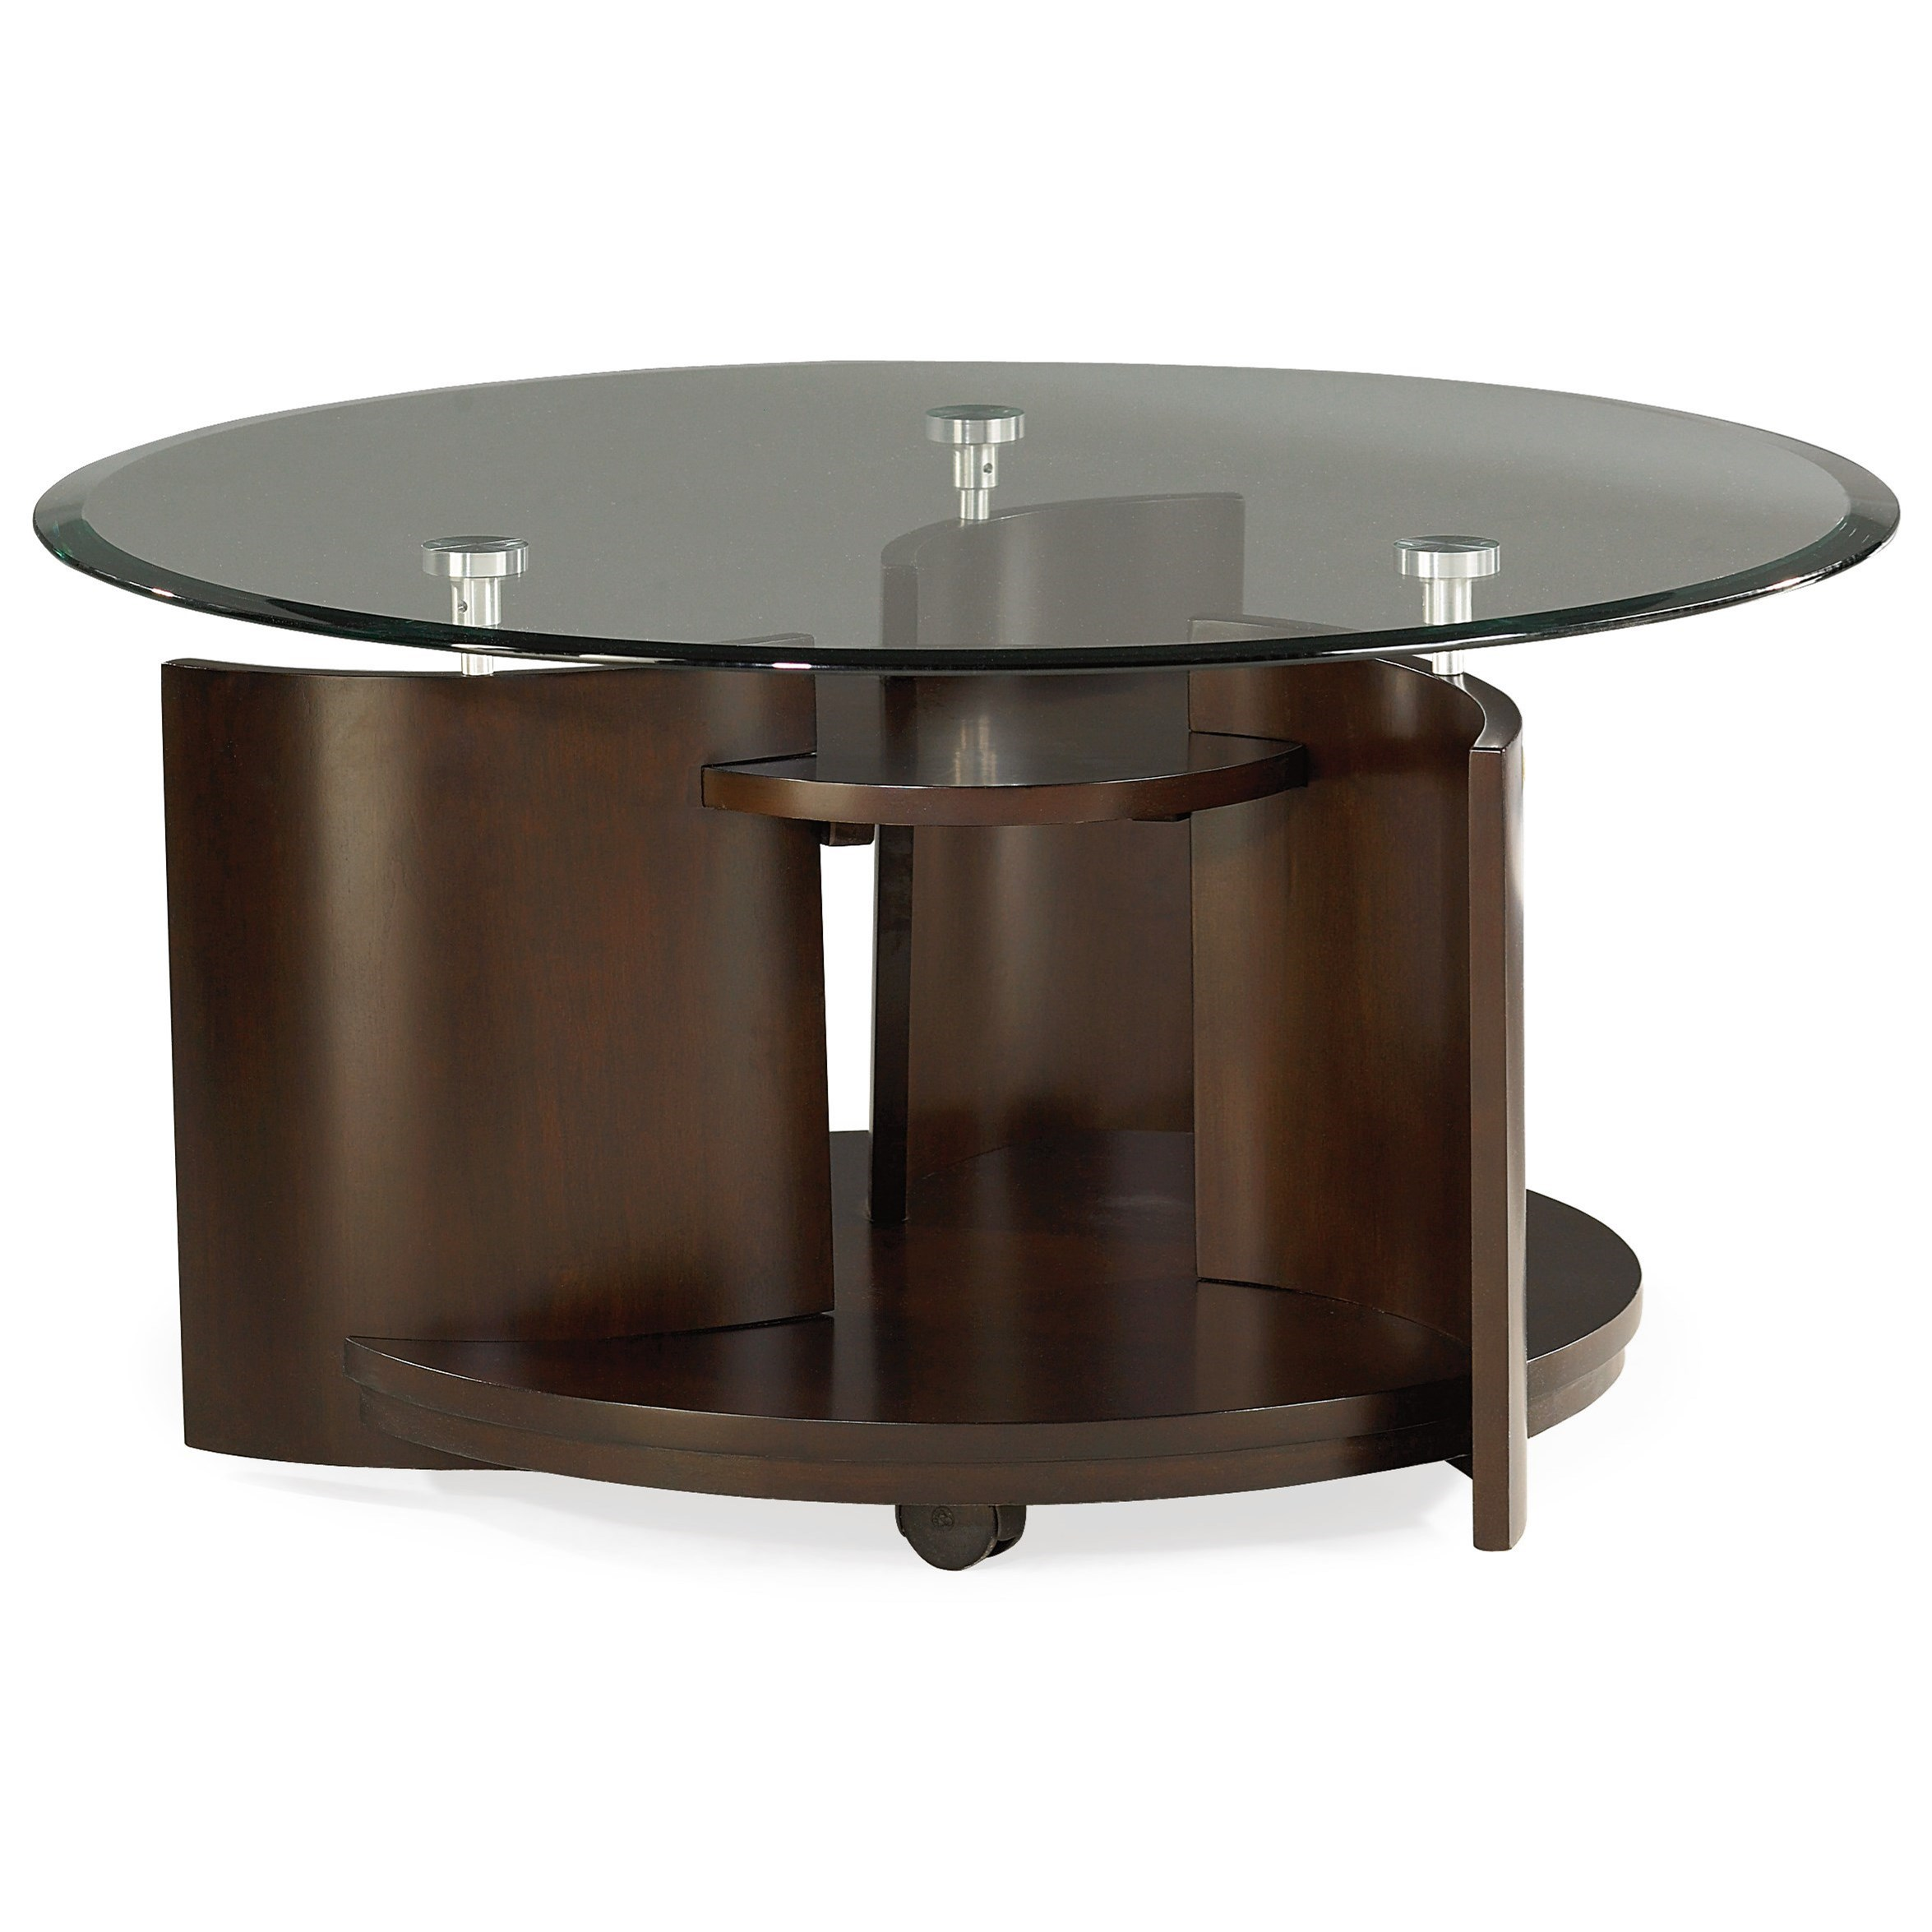 Apex glass top round cocktail table morris home end tables for Morris home